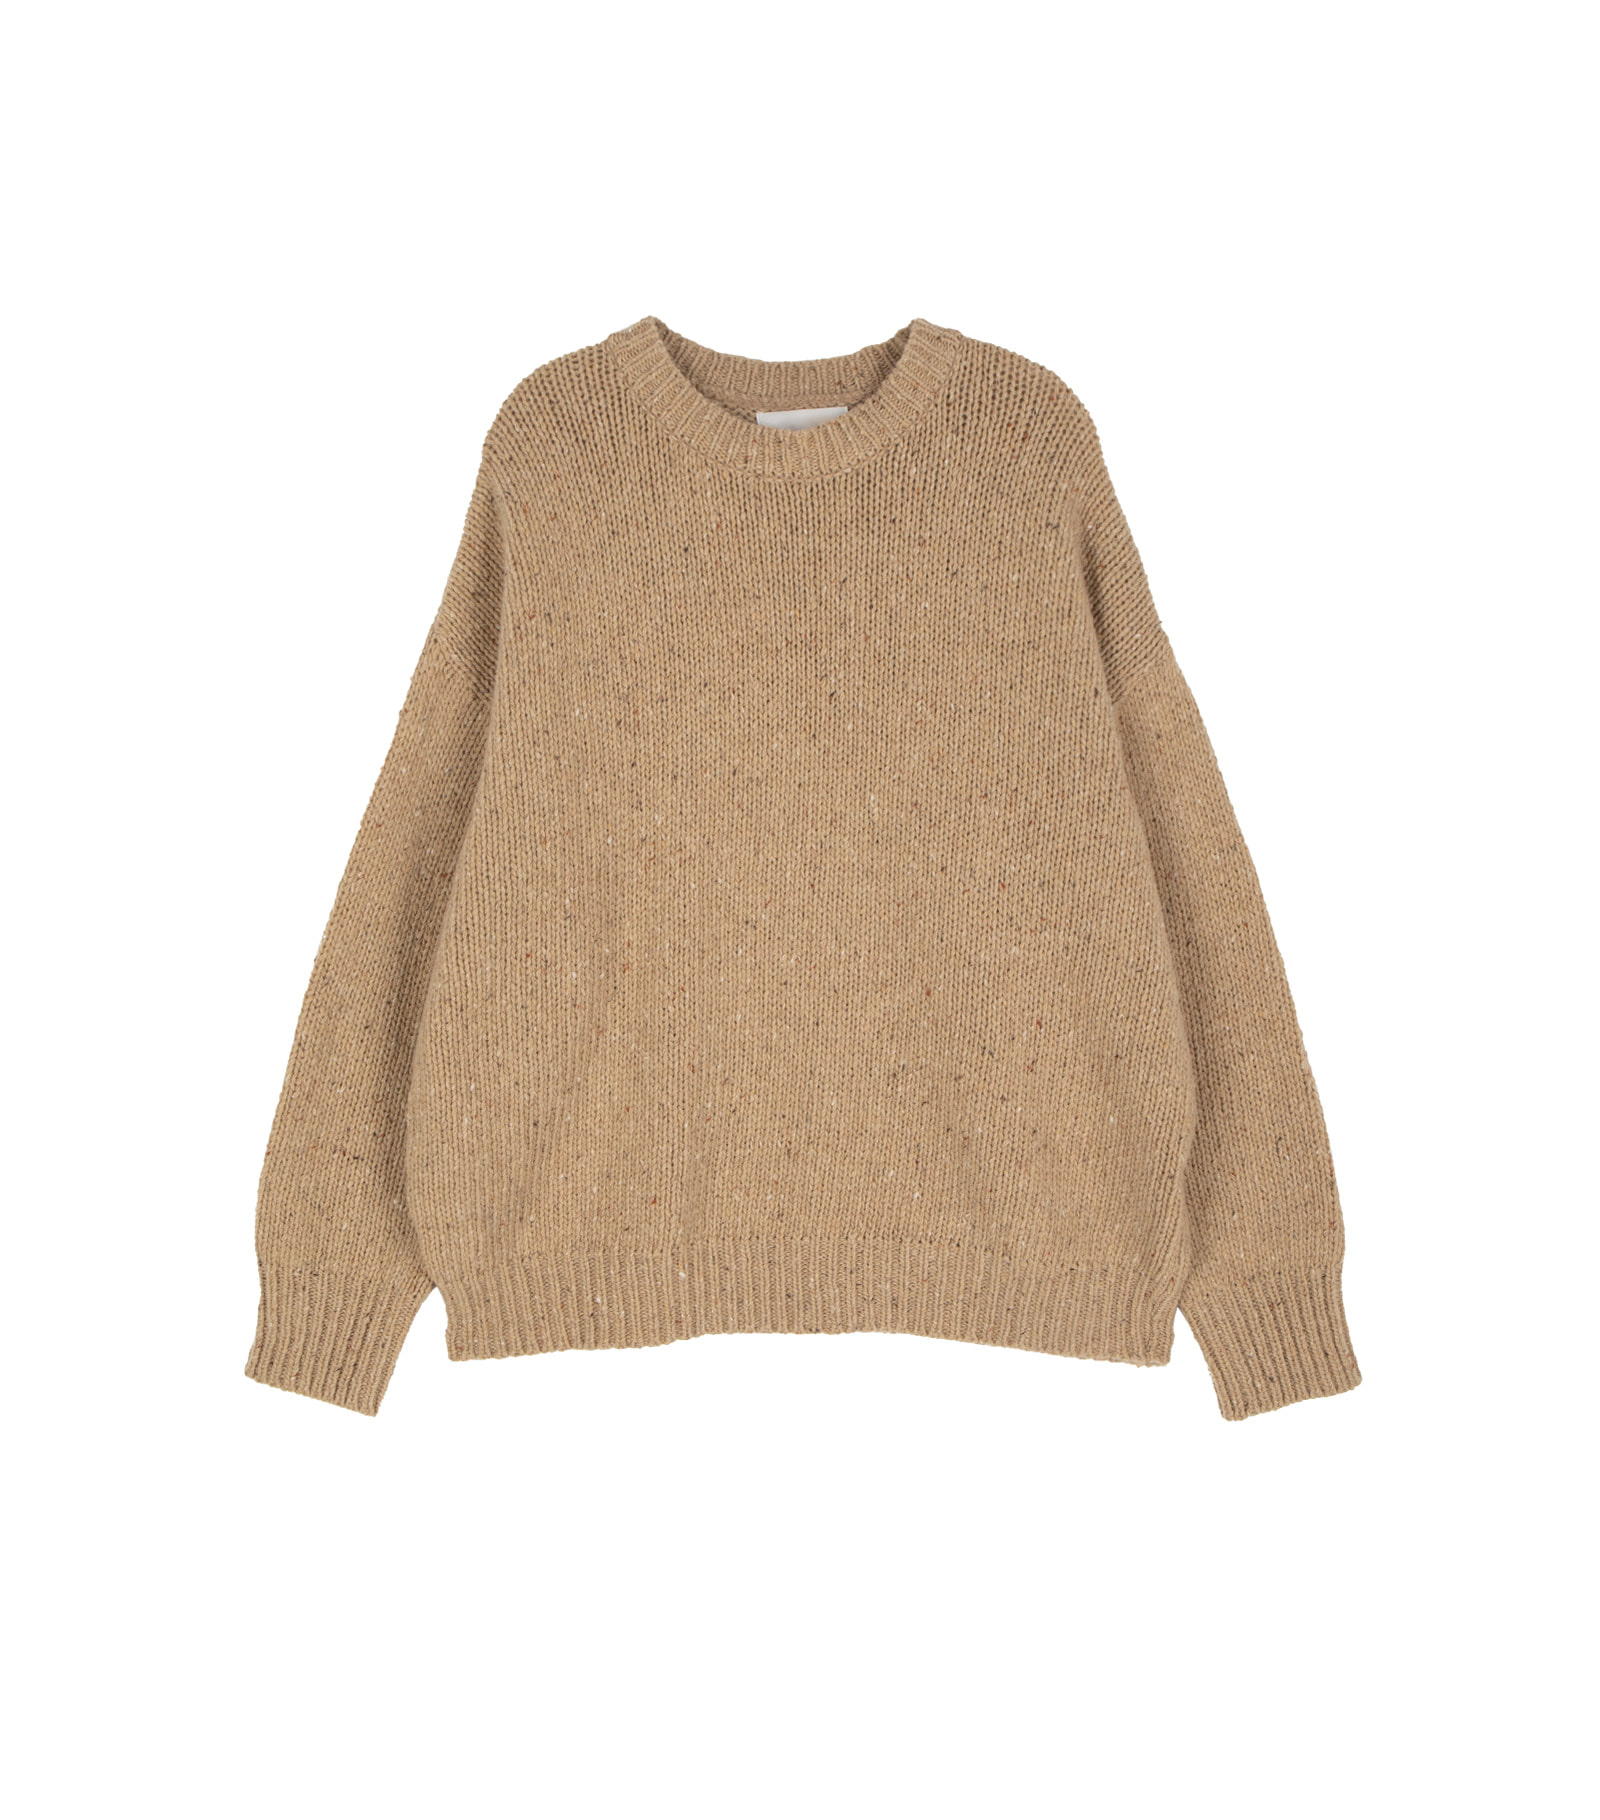 Middle shading crew neck knit